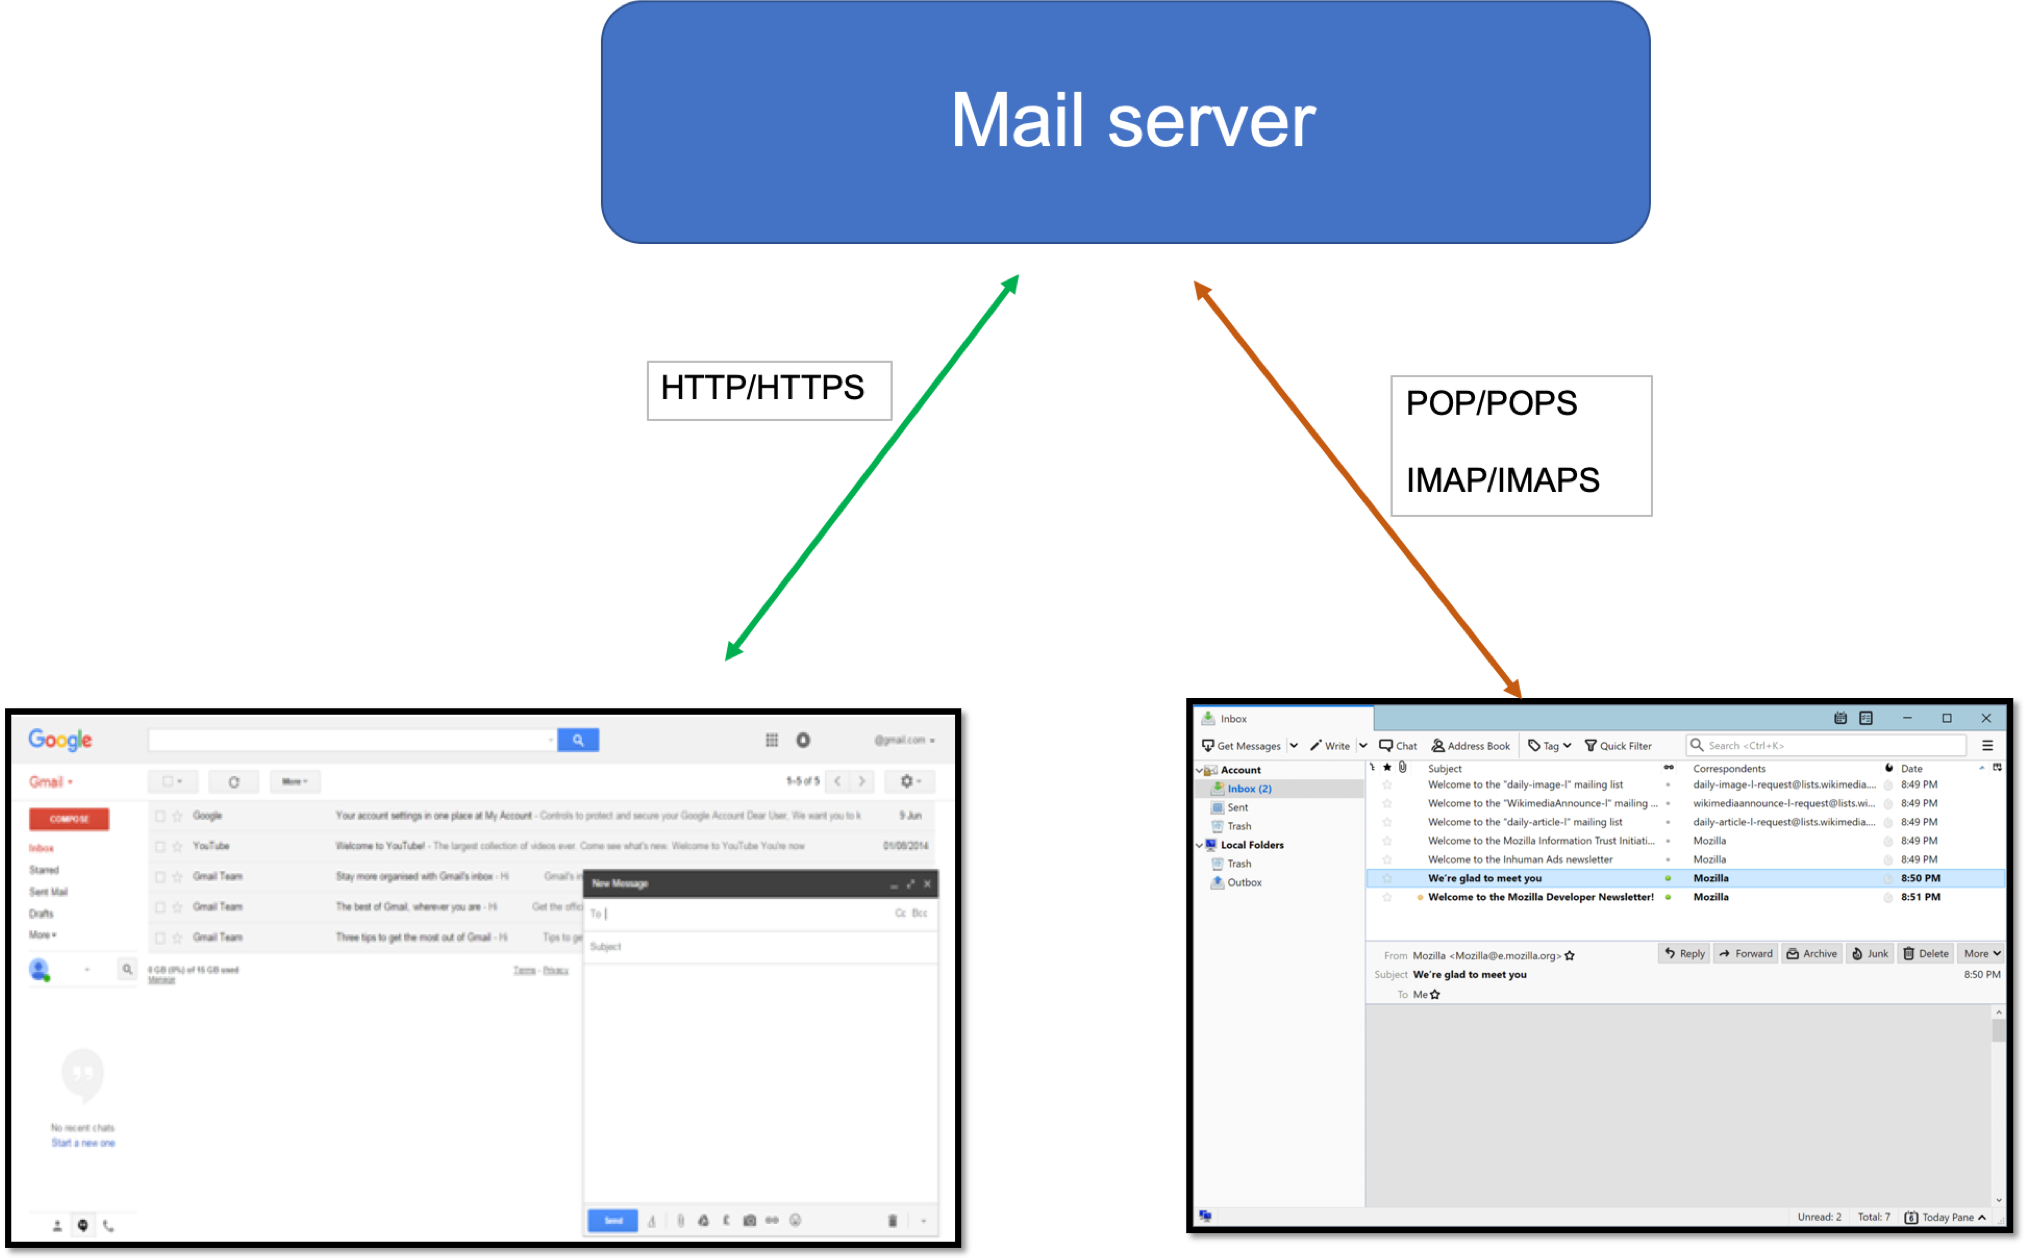 WebMail and ClientMail